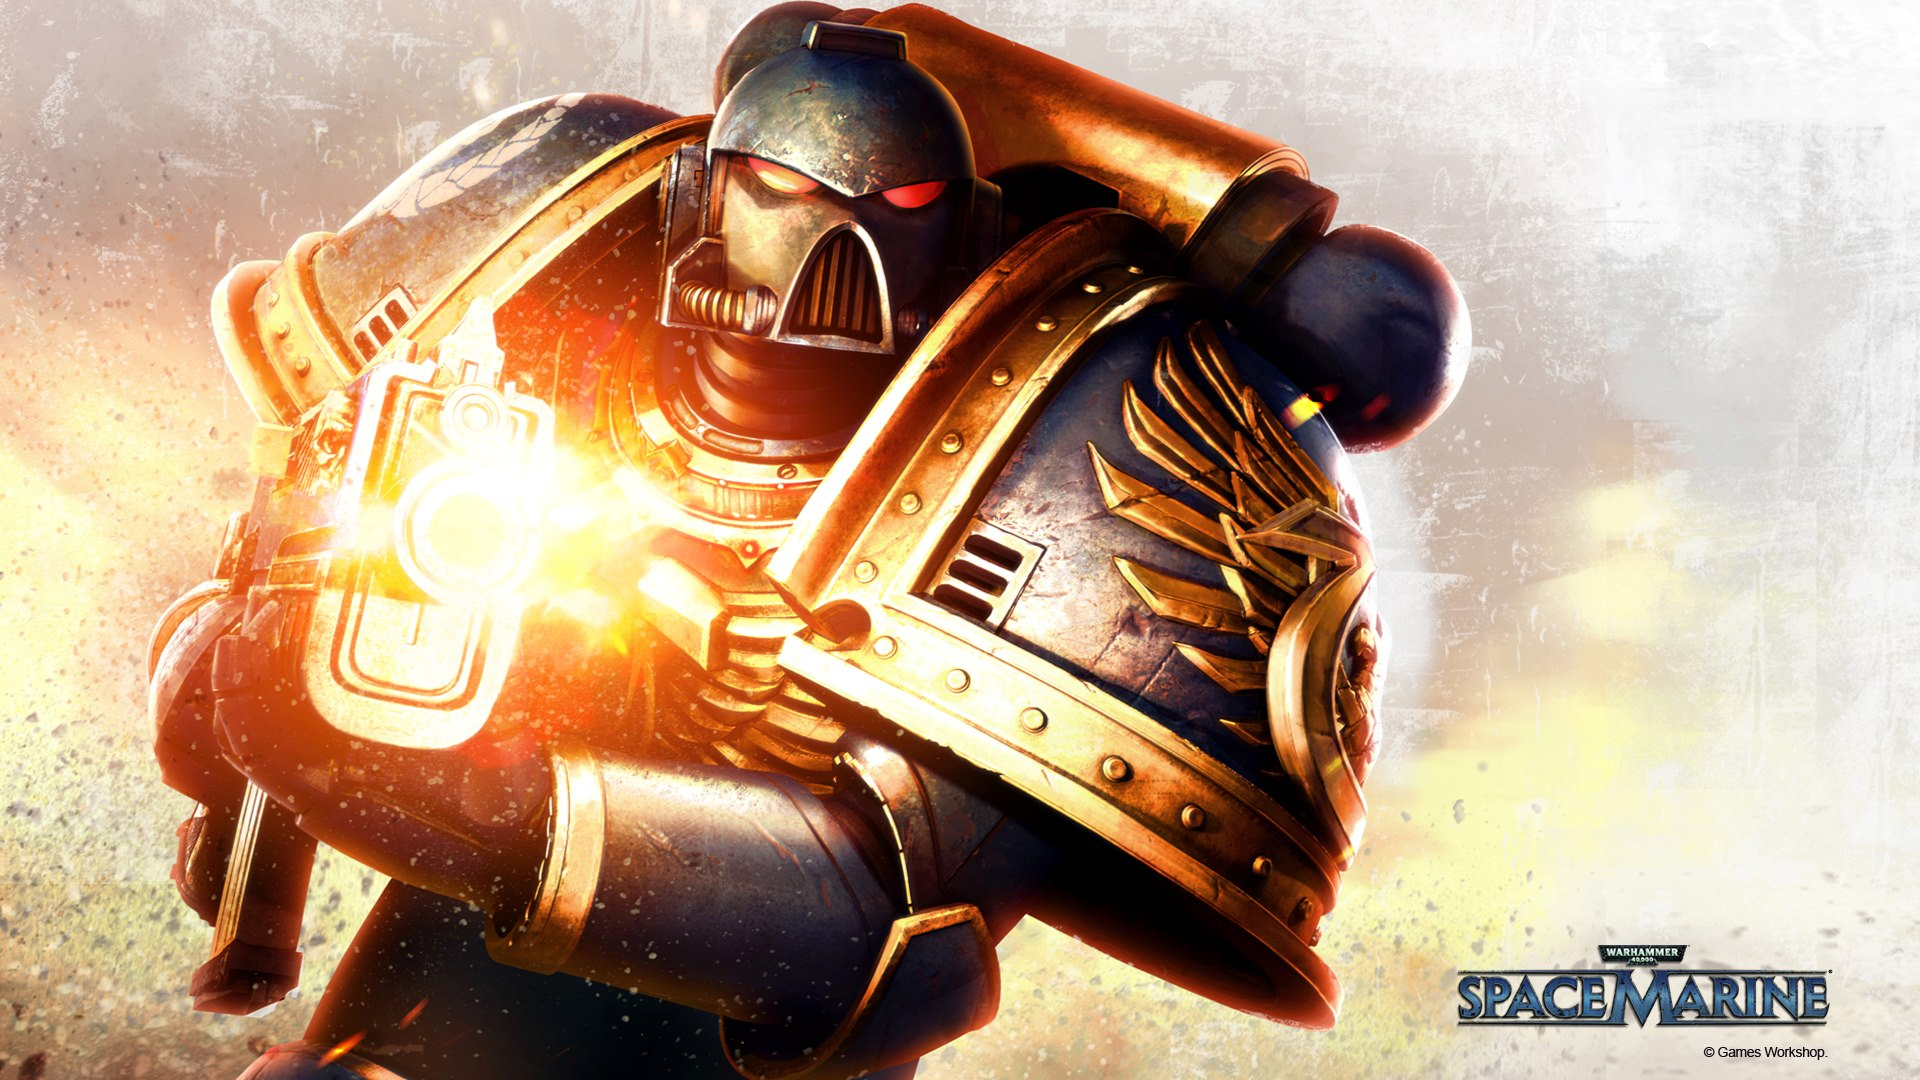 Space Marine wallpapers image   Warhammer 40K Fan Group 1920x1080